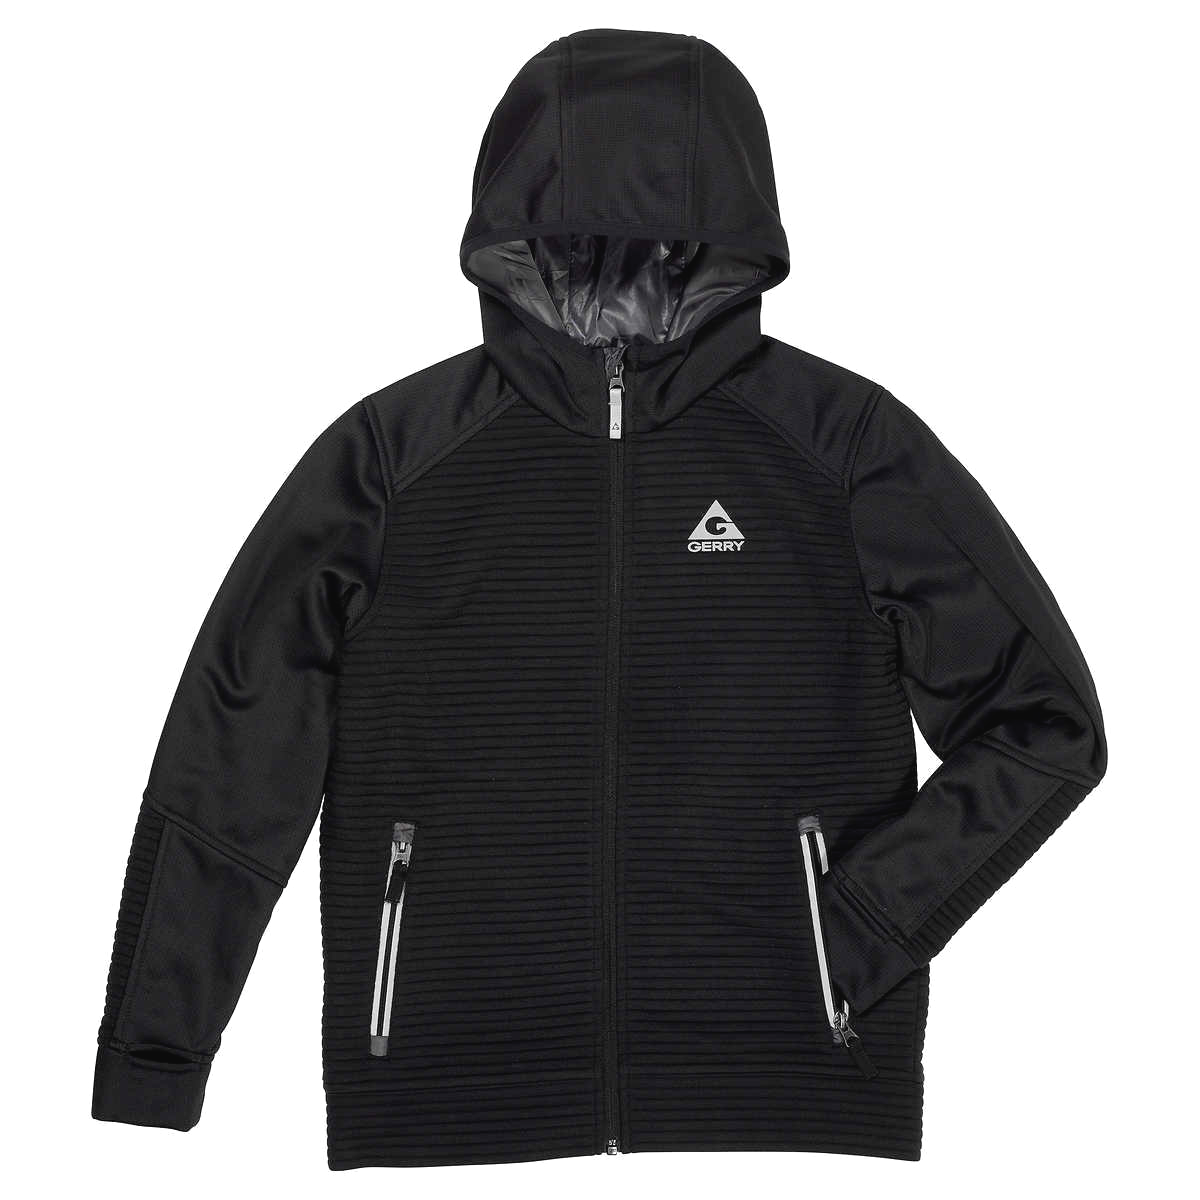 Gerry Youth Kid's Black Full Zip Ribbed Hooded Jacket XS 5-6